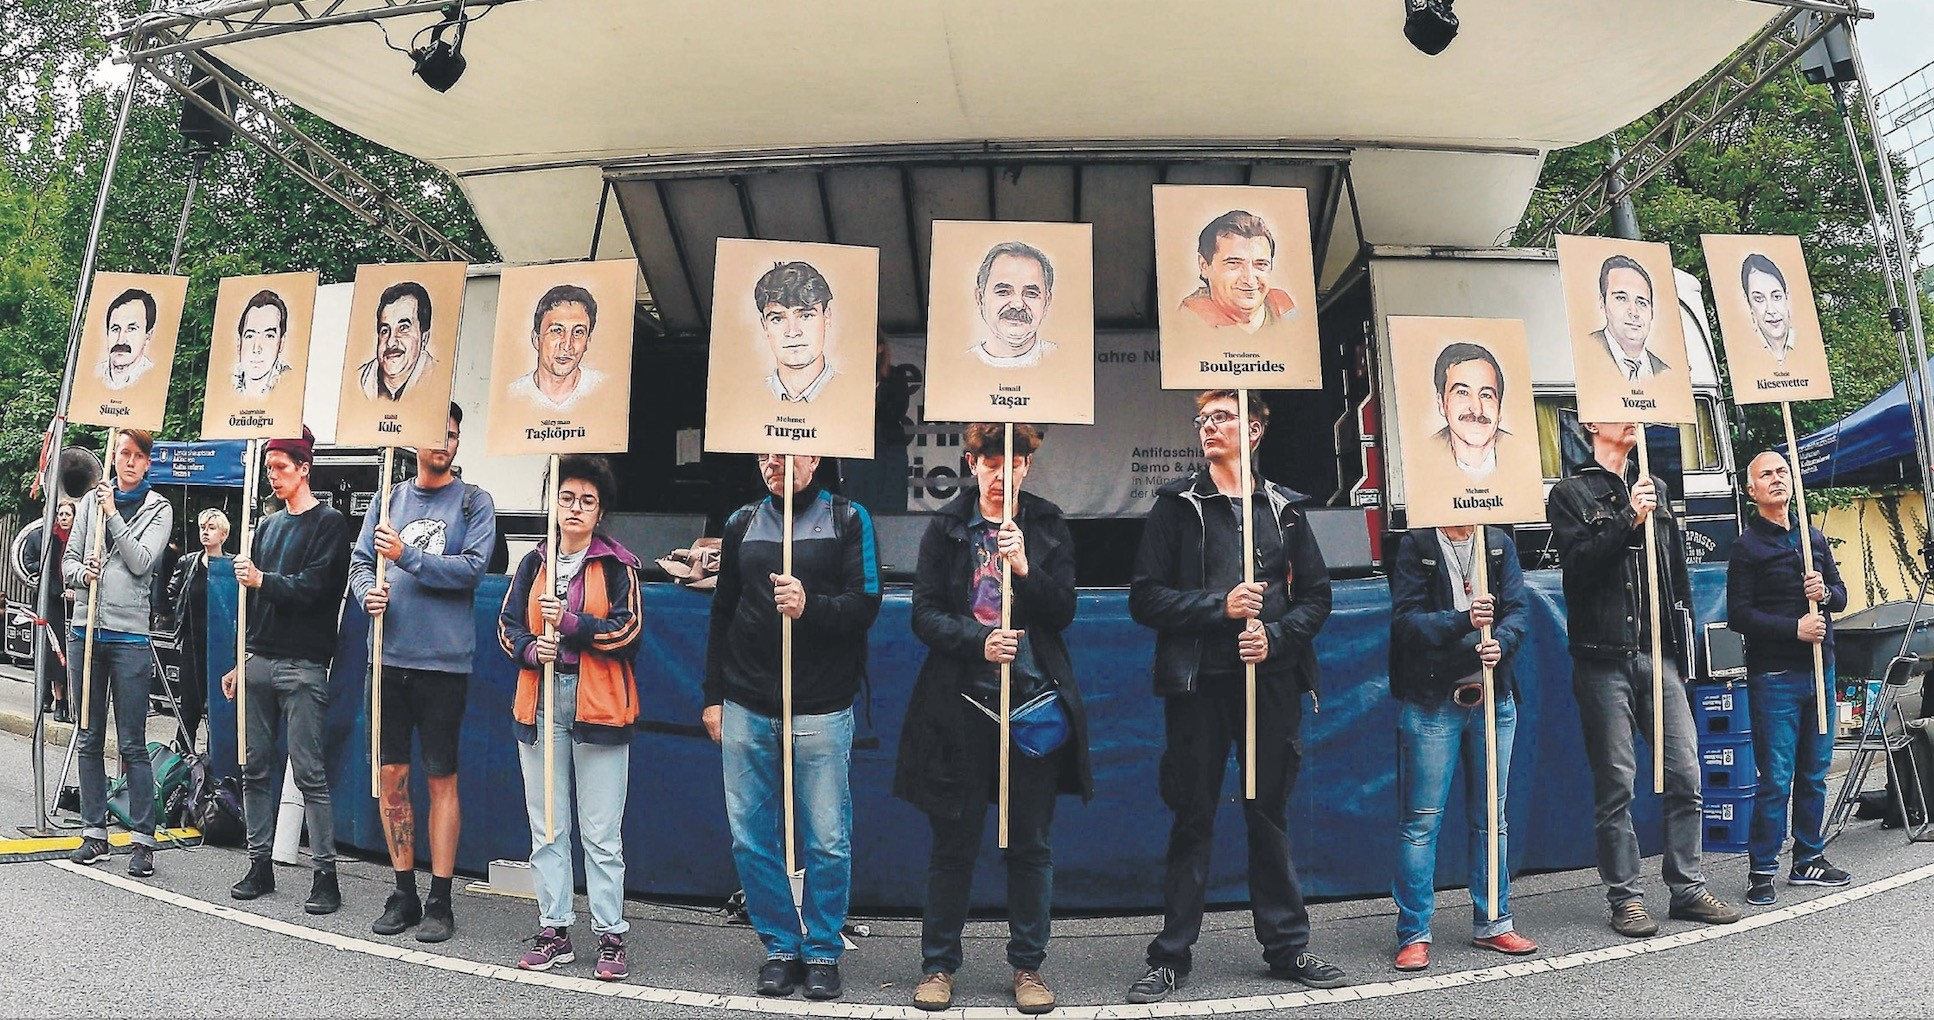 People hold portraits of NSU victims in front of the Higher Regional Court in Munich, July 10, 2018.